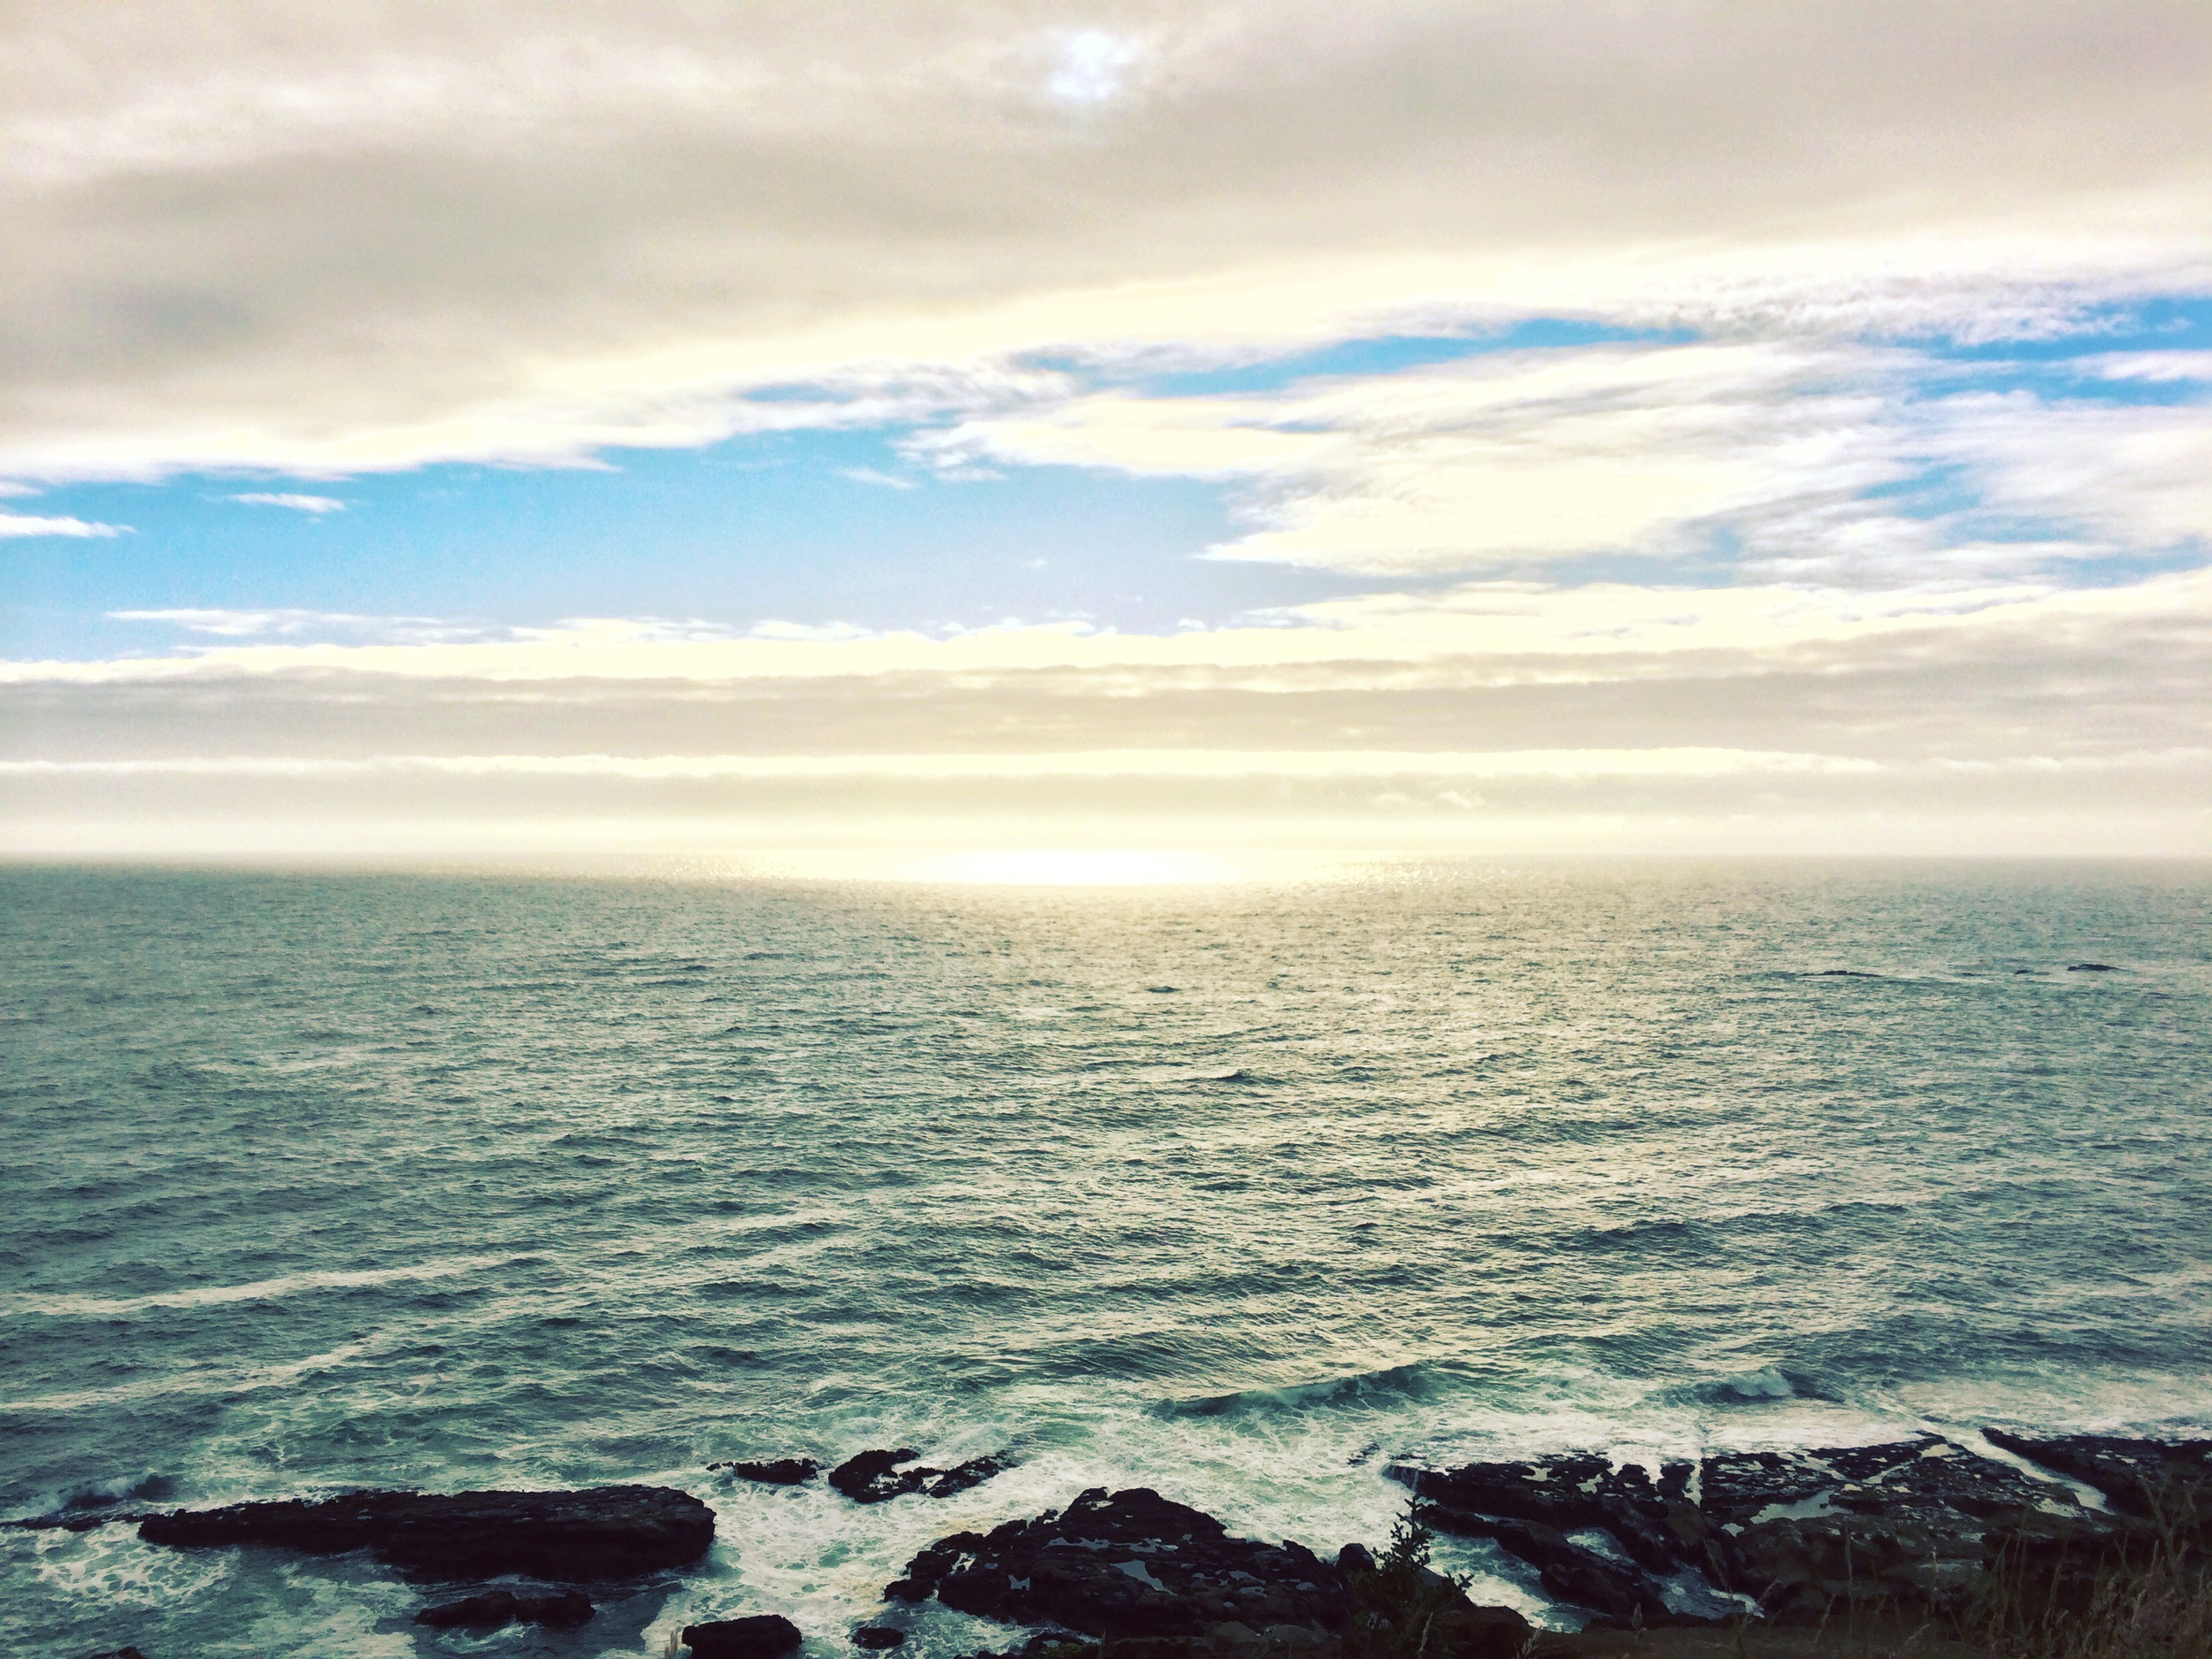 The Pacific Ocean from Coos Bay, Oregon. Breathtaking.